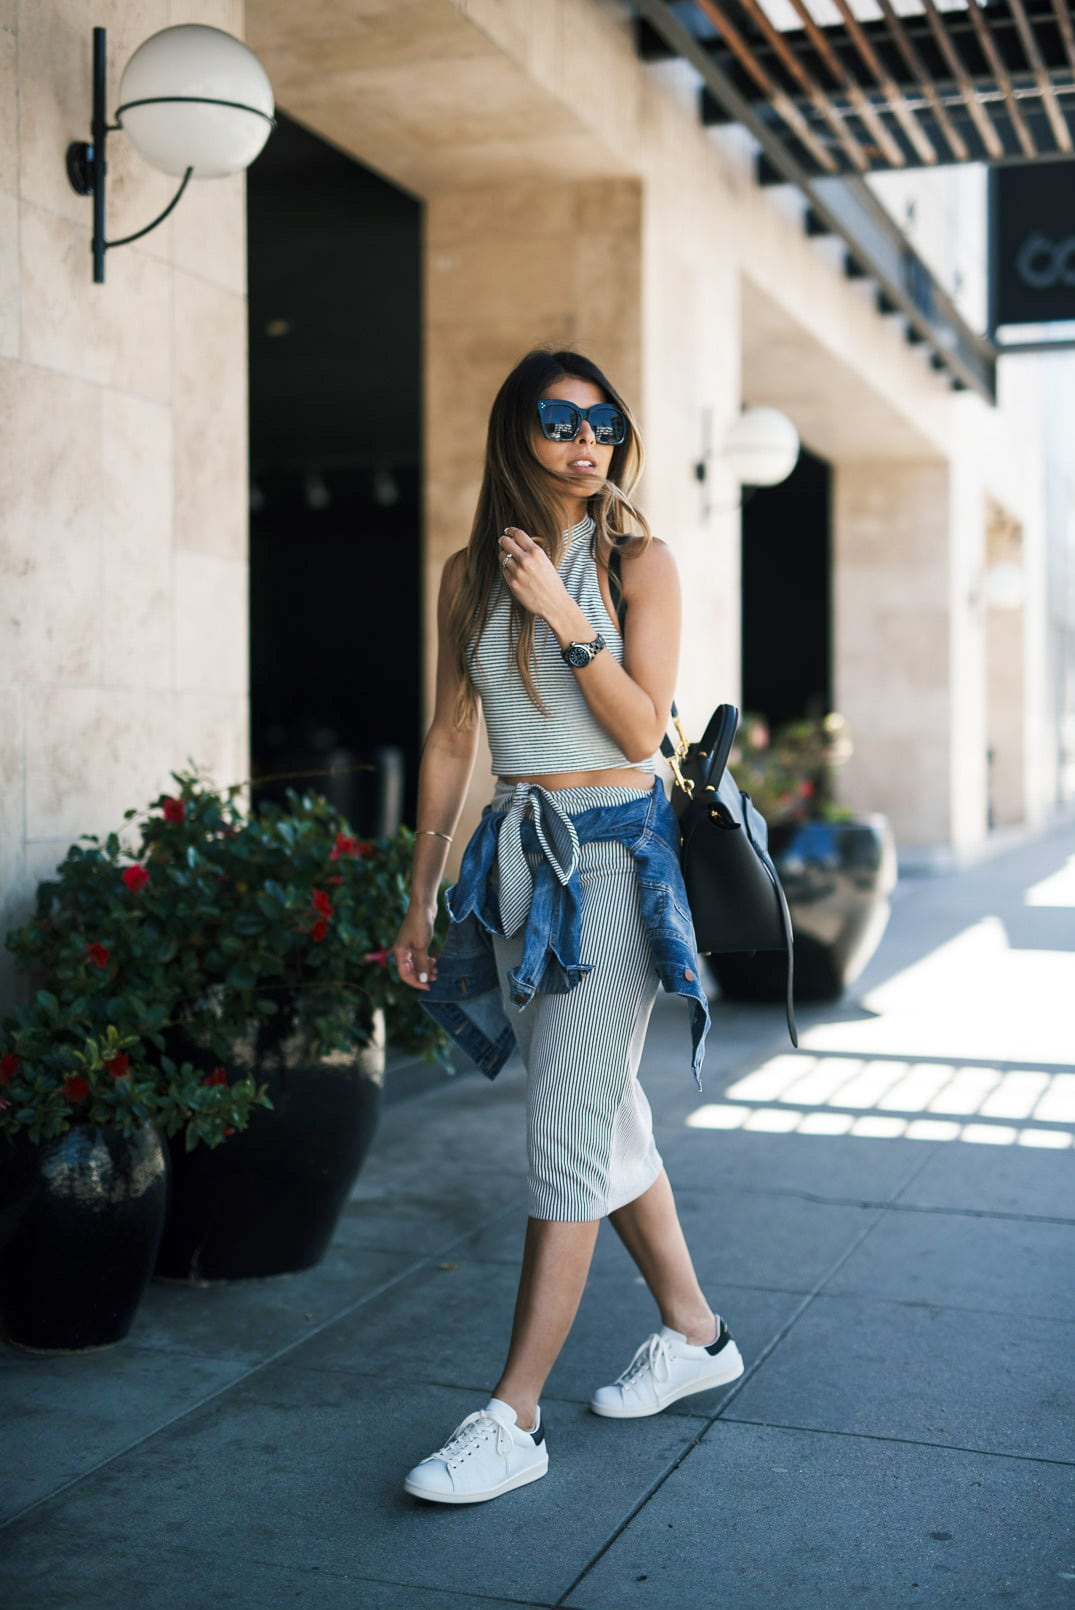 How to look chic in white sneakers - The Girl from Panama